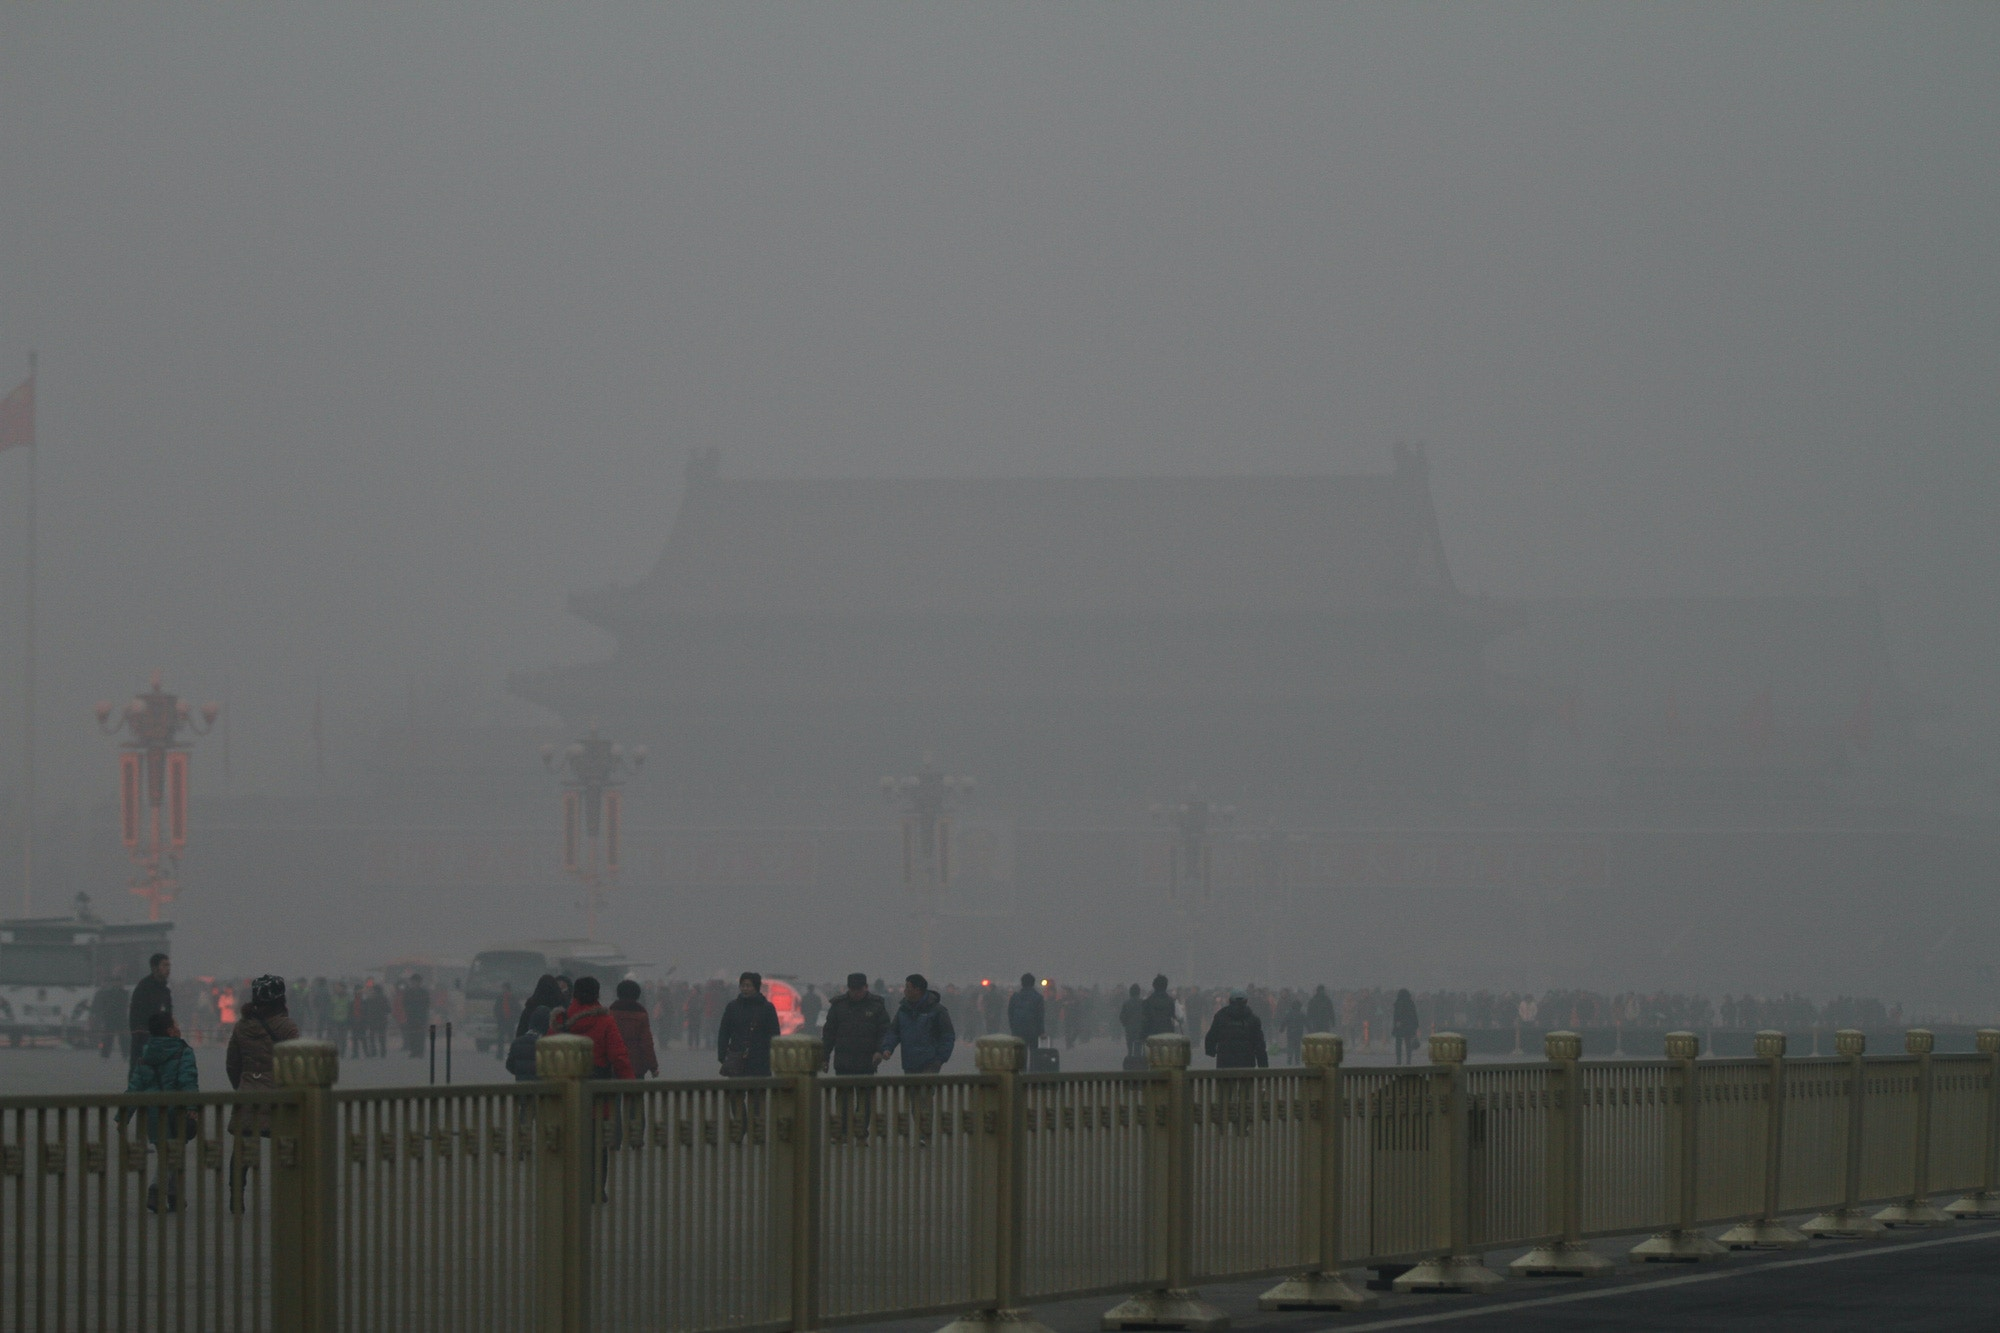 BEIJING, CHINA - JANUARY 16:  (CHINA OUT) People visit the Tiananmen Square which is shrouded with heavy smog on January 16, 2014 in Beijing, China. Beijing Municipal Government issued a yellow smog alert this morning.  (Photo by VCG/VCG via Getty Images)